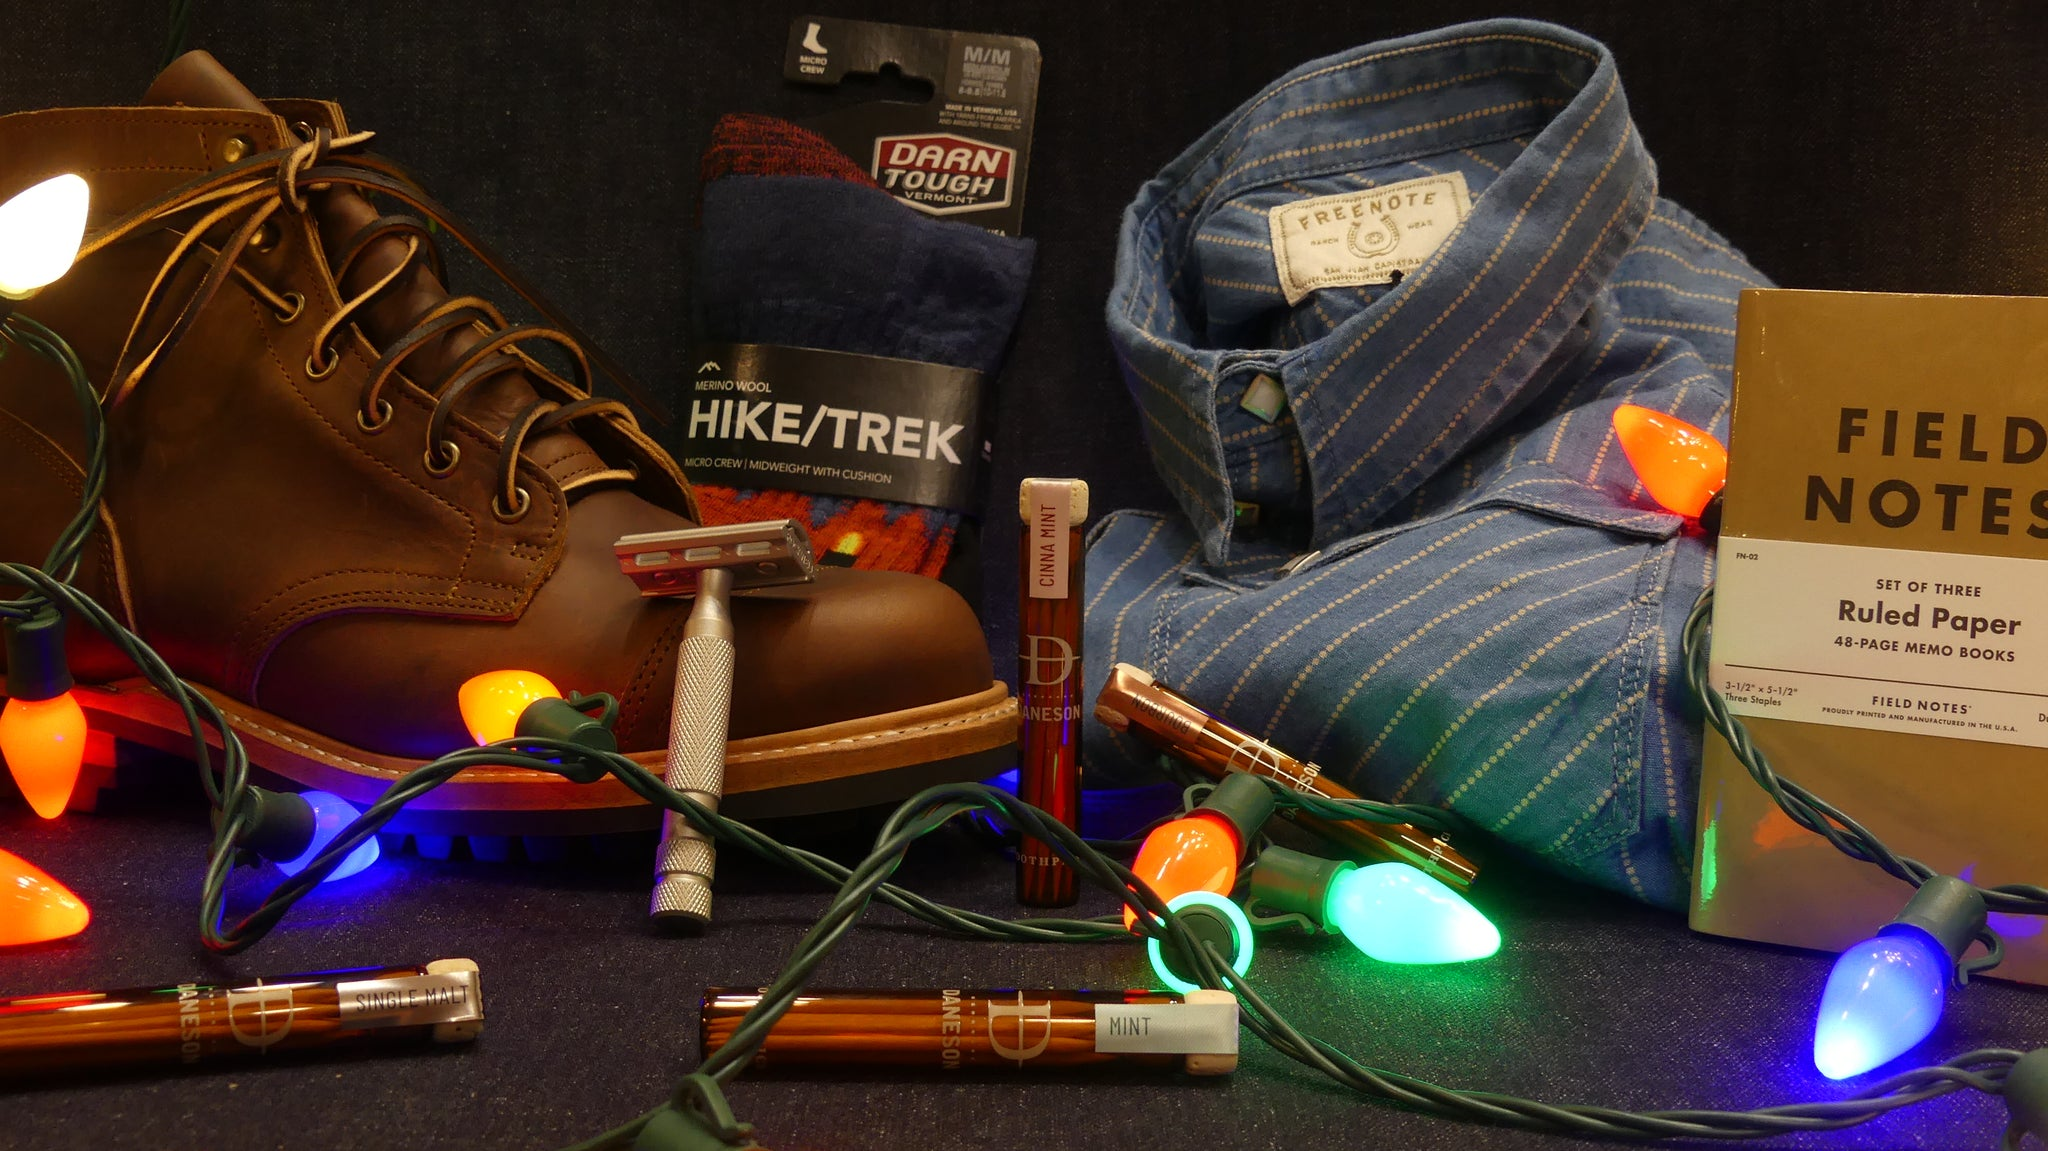 Items carried at Porterhouse on a denim backdrop with Christmas lights